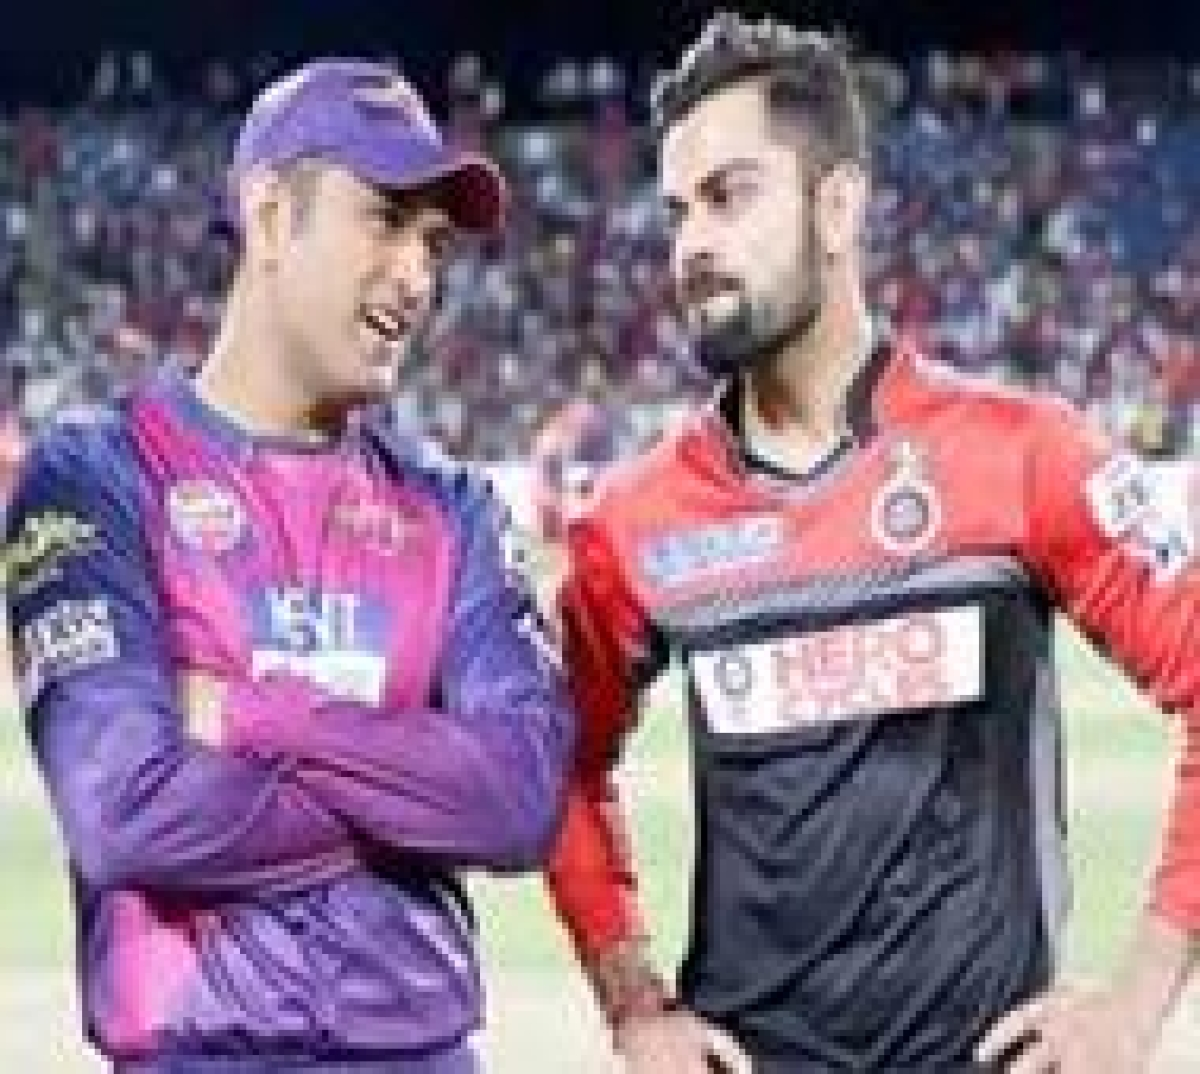 Come September, it could be Virat vs Dhoni at Houston